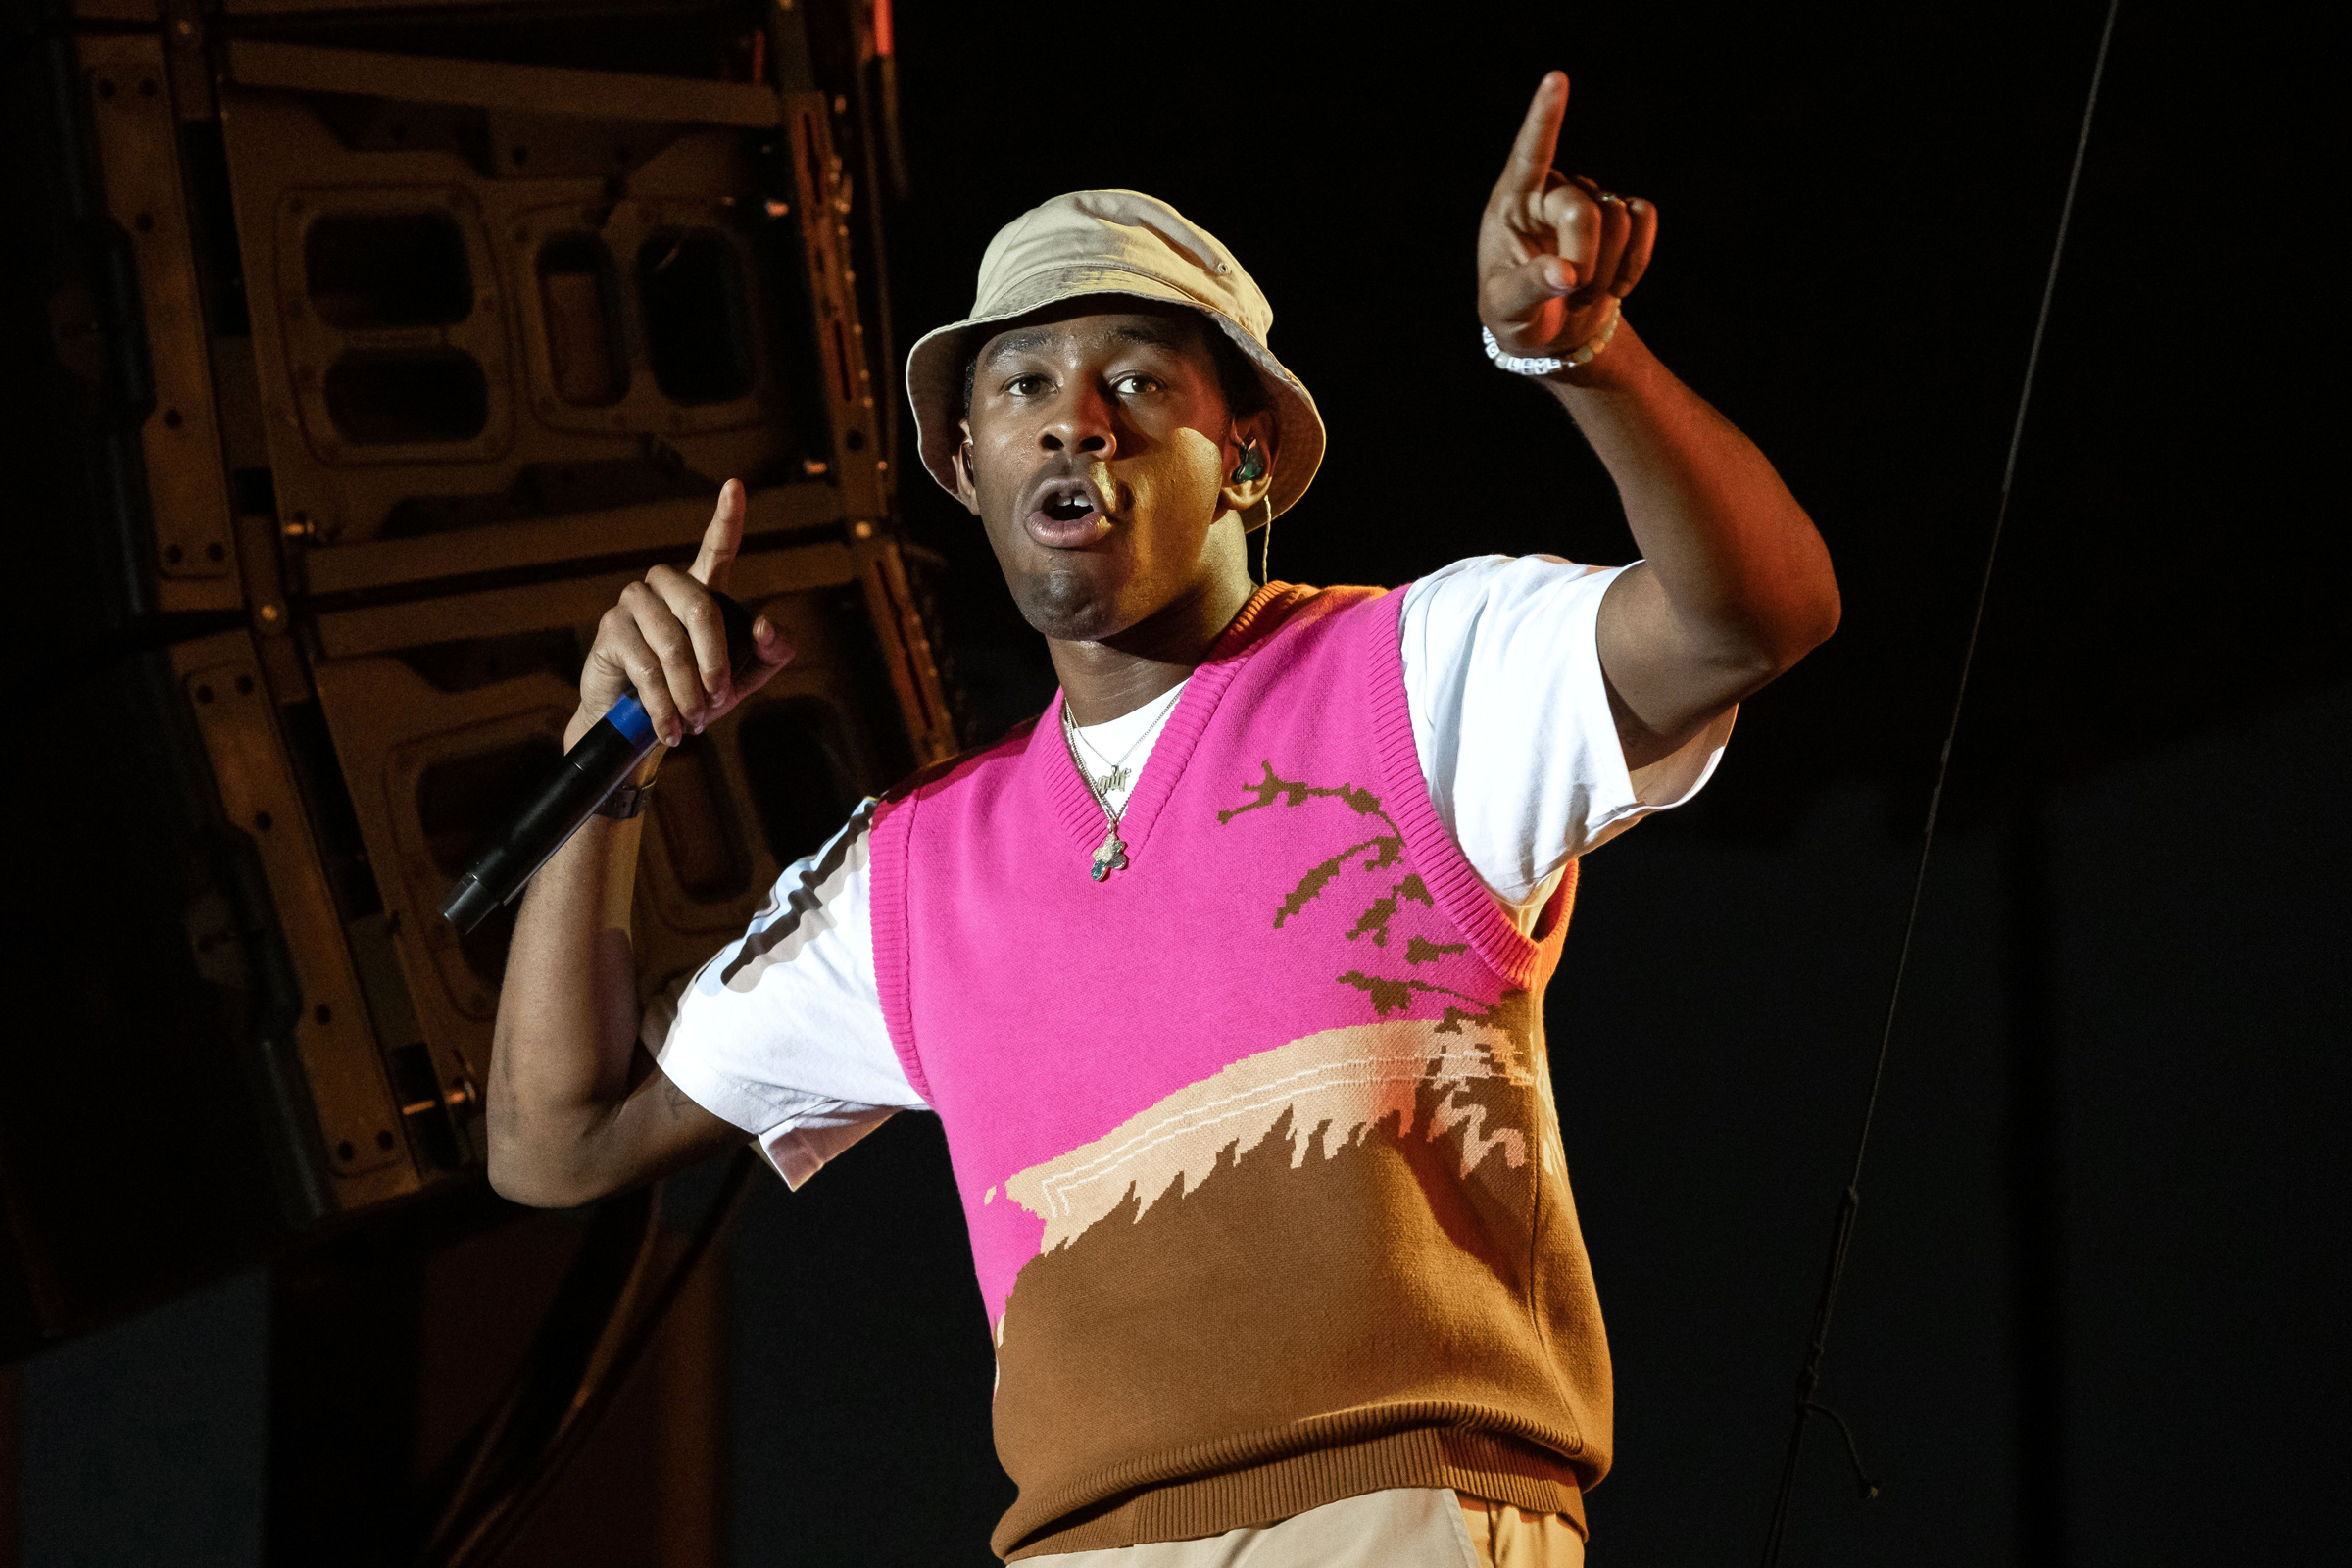 #Podcast: Tyler the Creator en Traslúcido.